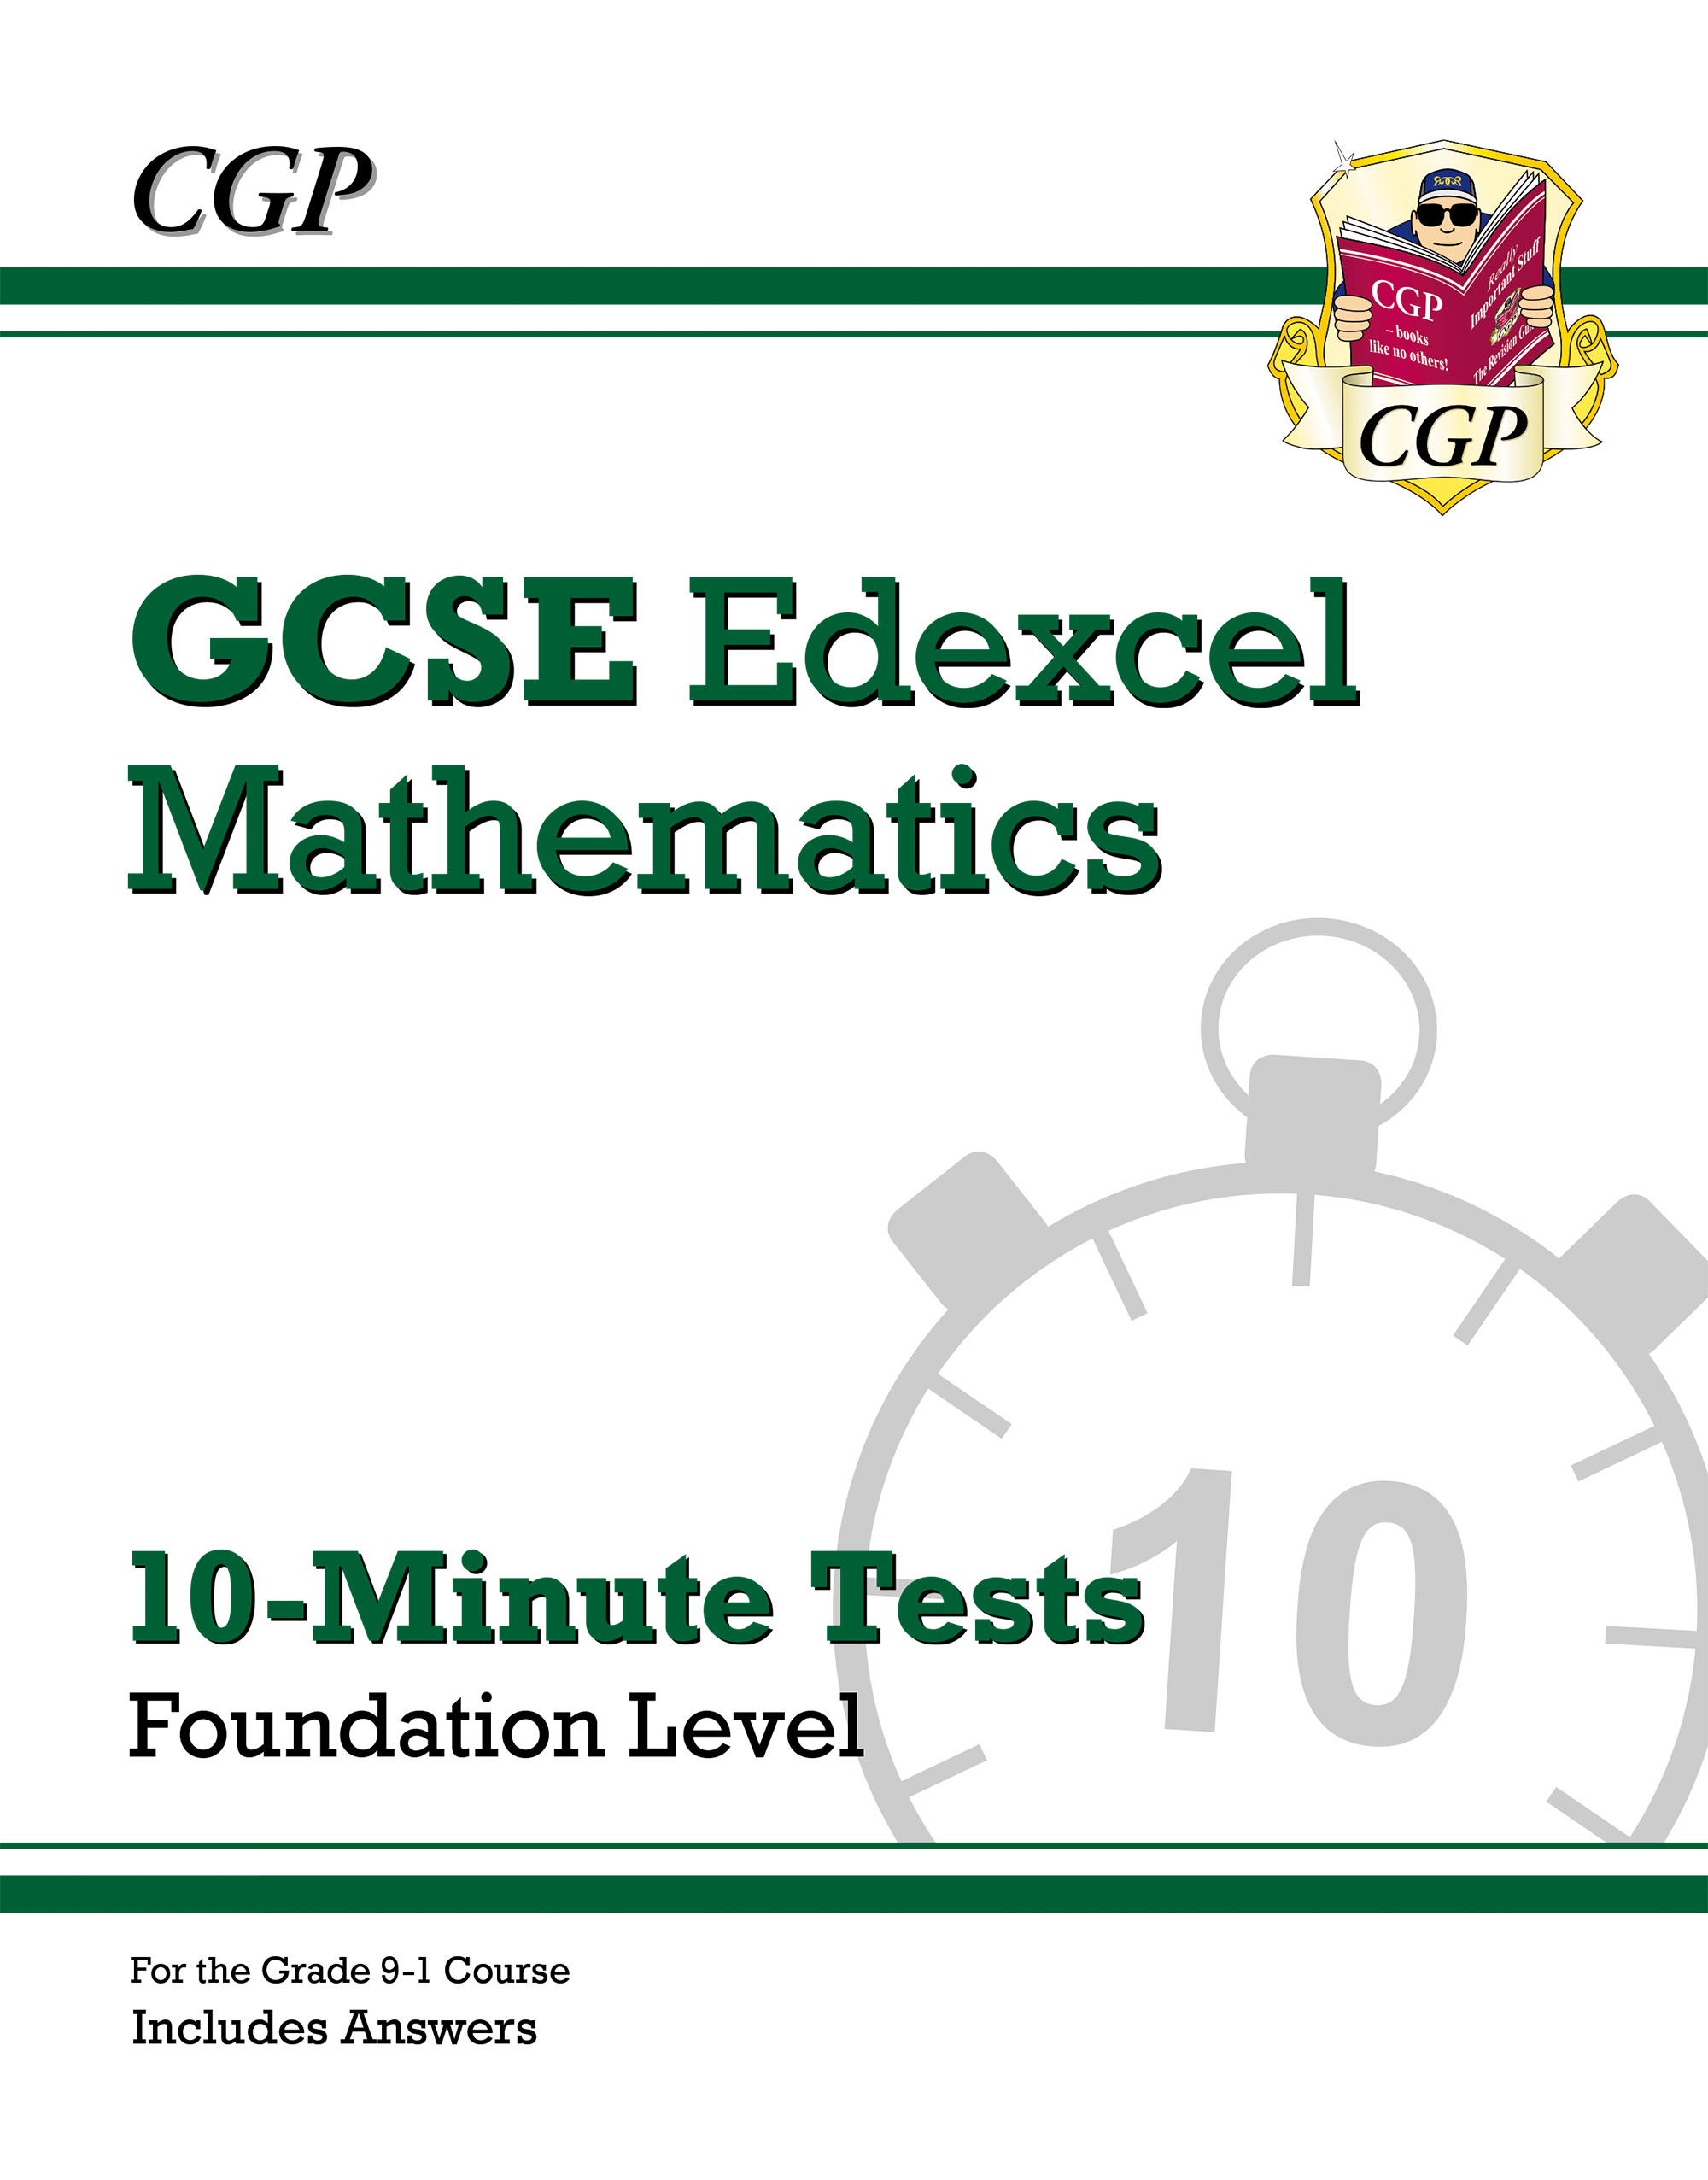 MXFXP41DK - New Grade 9-1 GCSE Maths Edexcel 10-Minute Tests - Foundation (includes Answers)